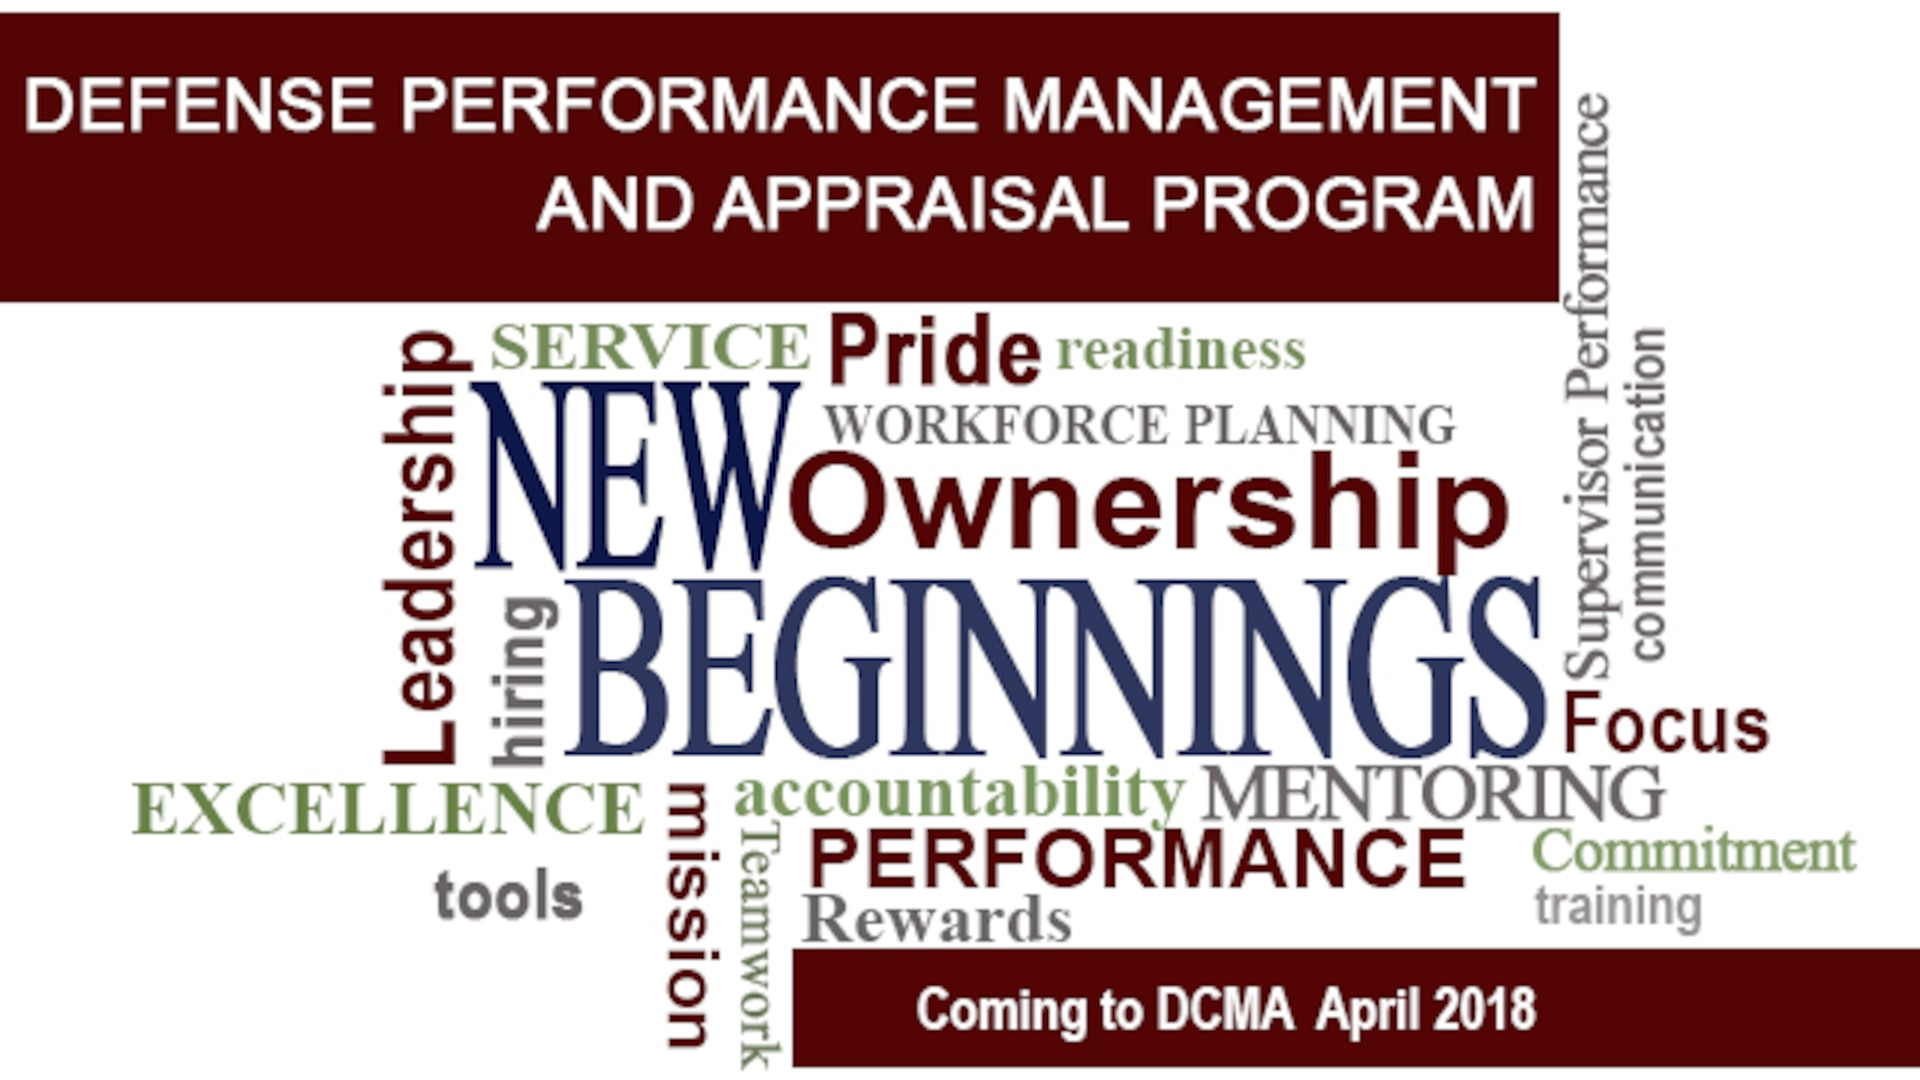 DCMA will soon transition to a new DoD-wide performance management system called DPMAP.